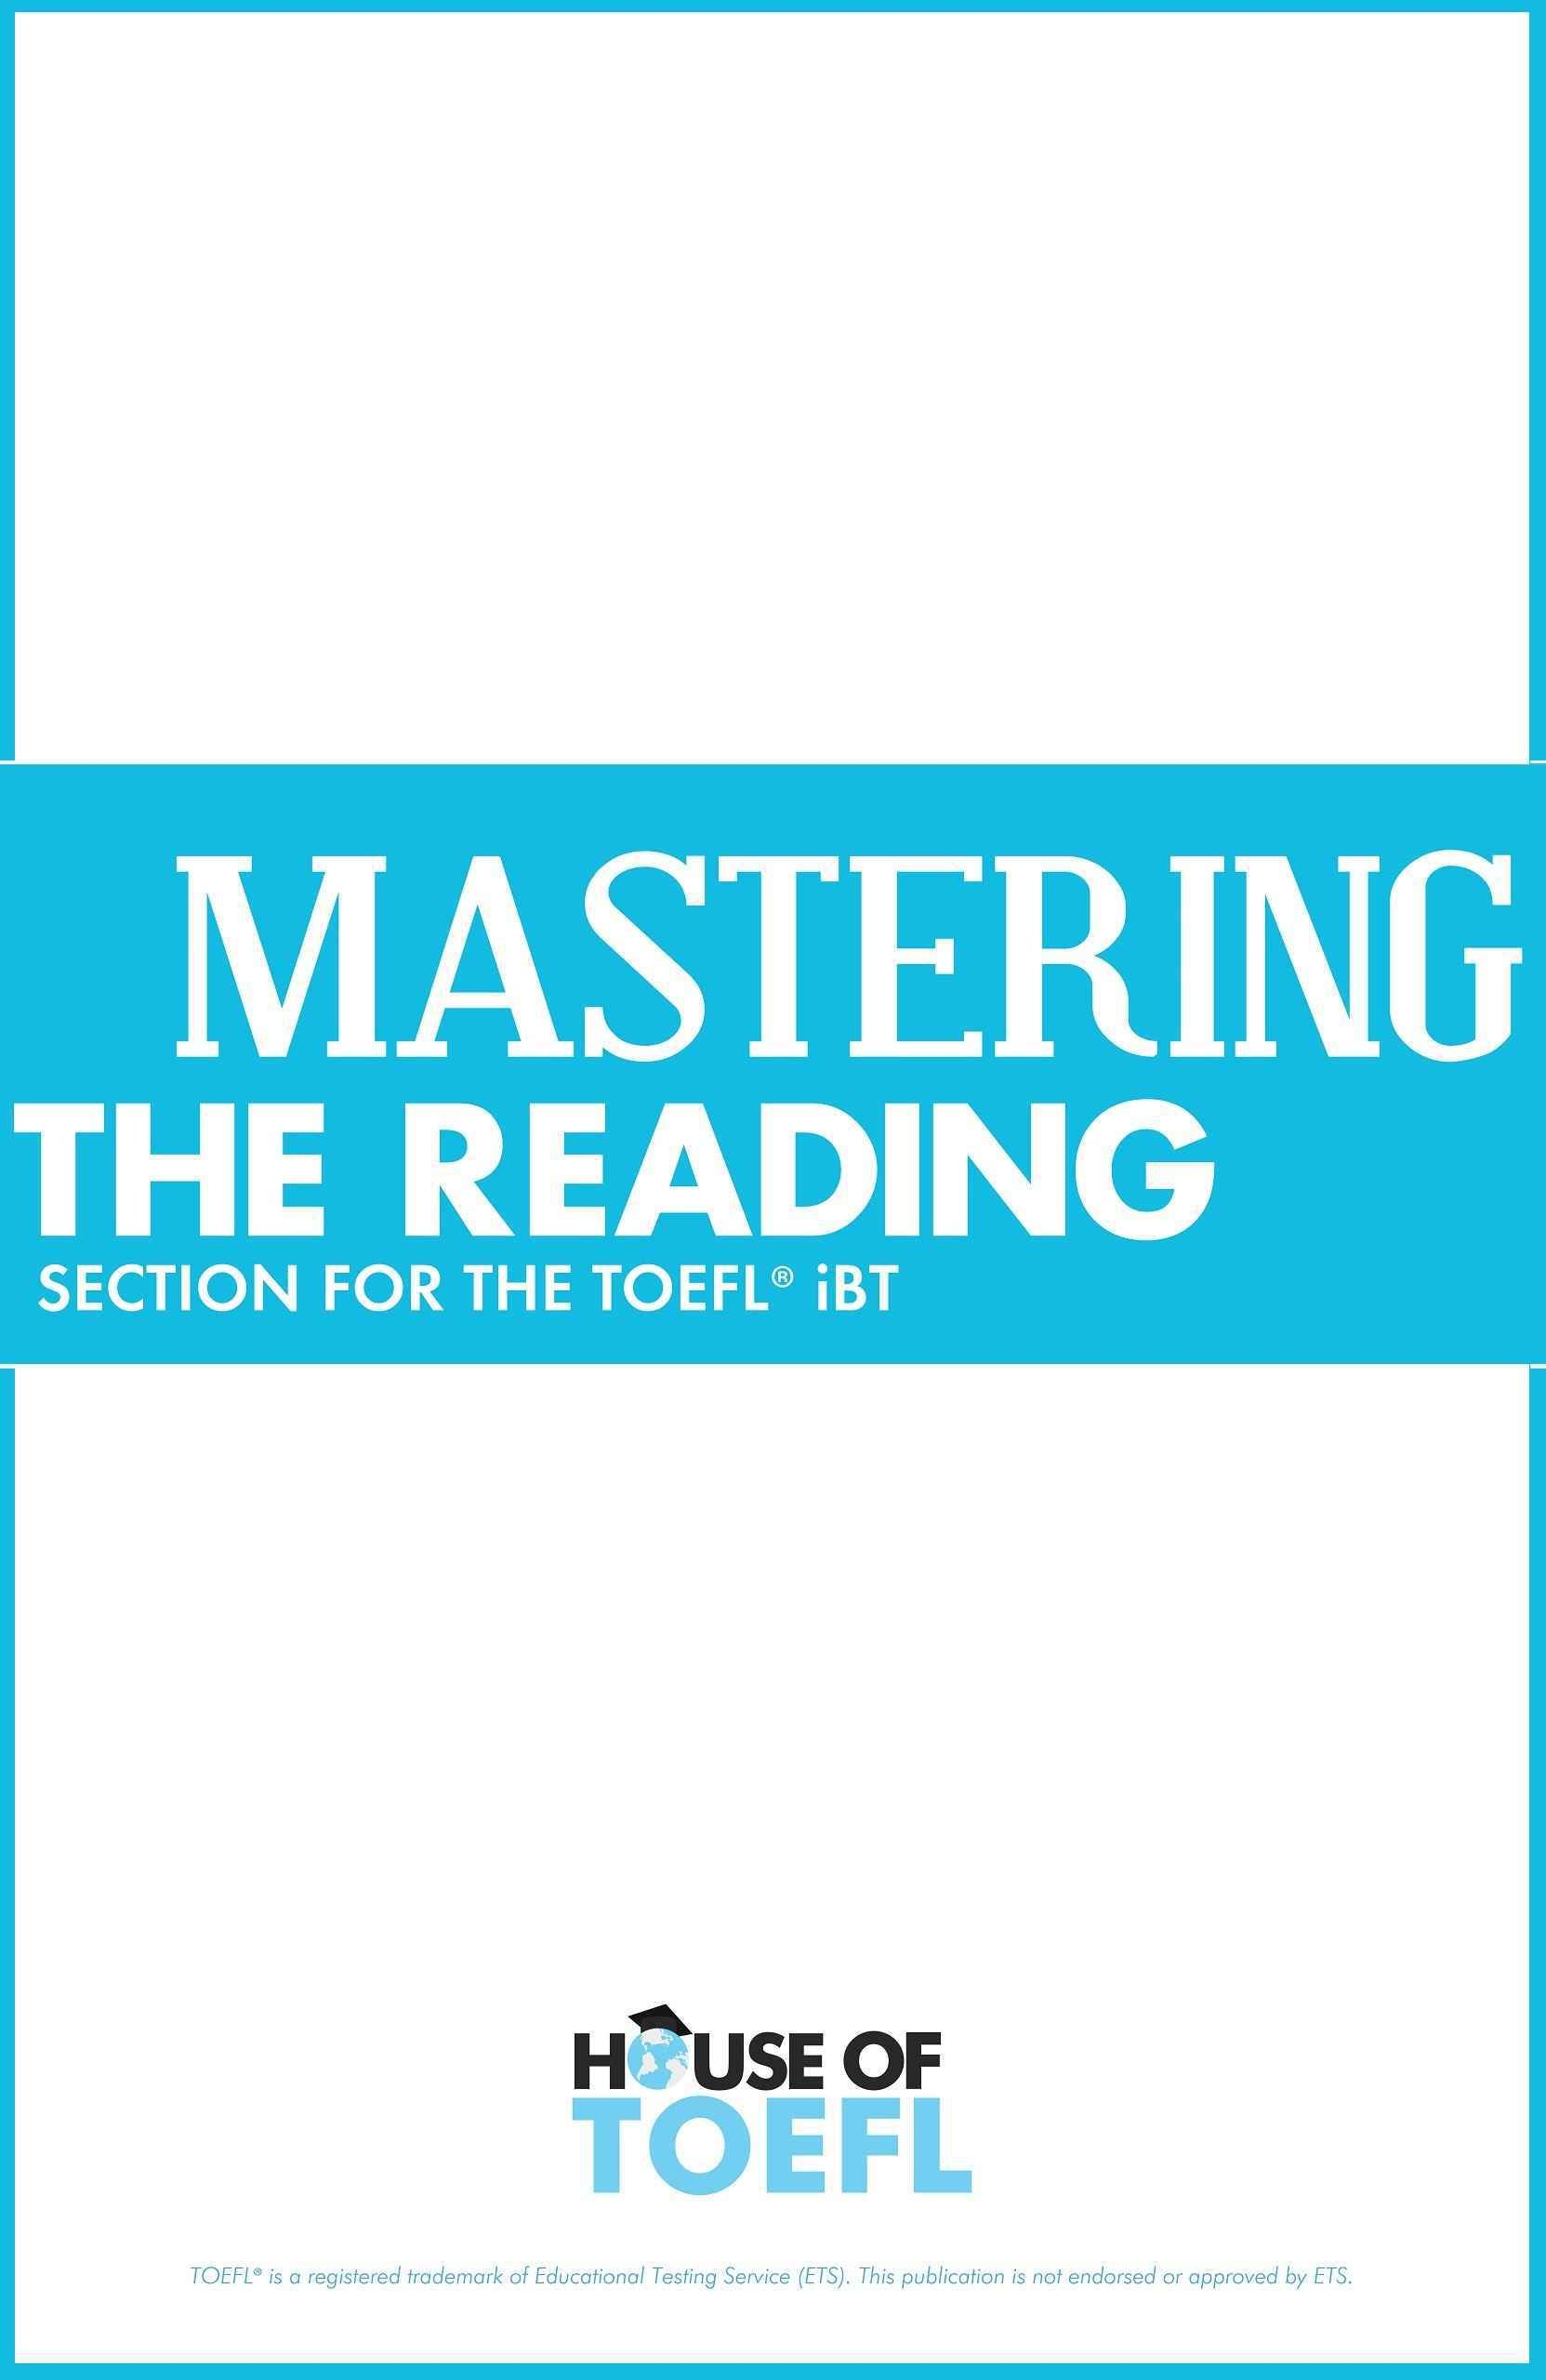 Mastering the Reading Section for the TOEFL iBT by Kathy Spratt